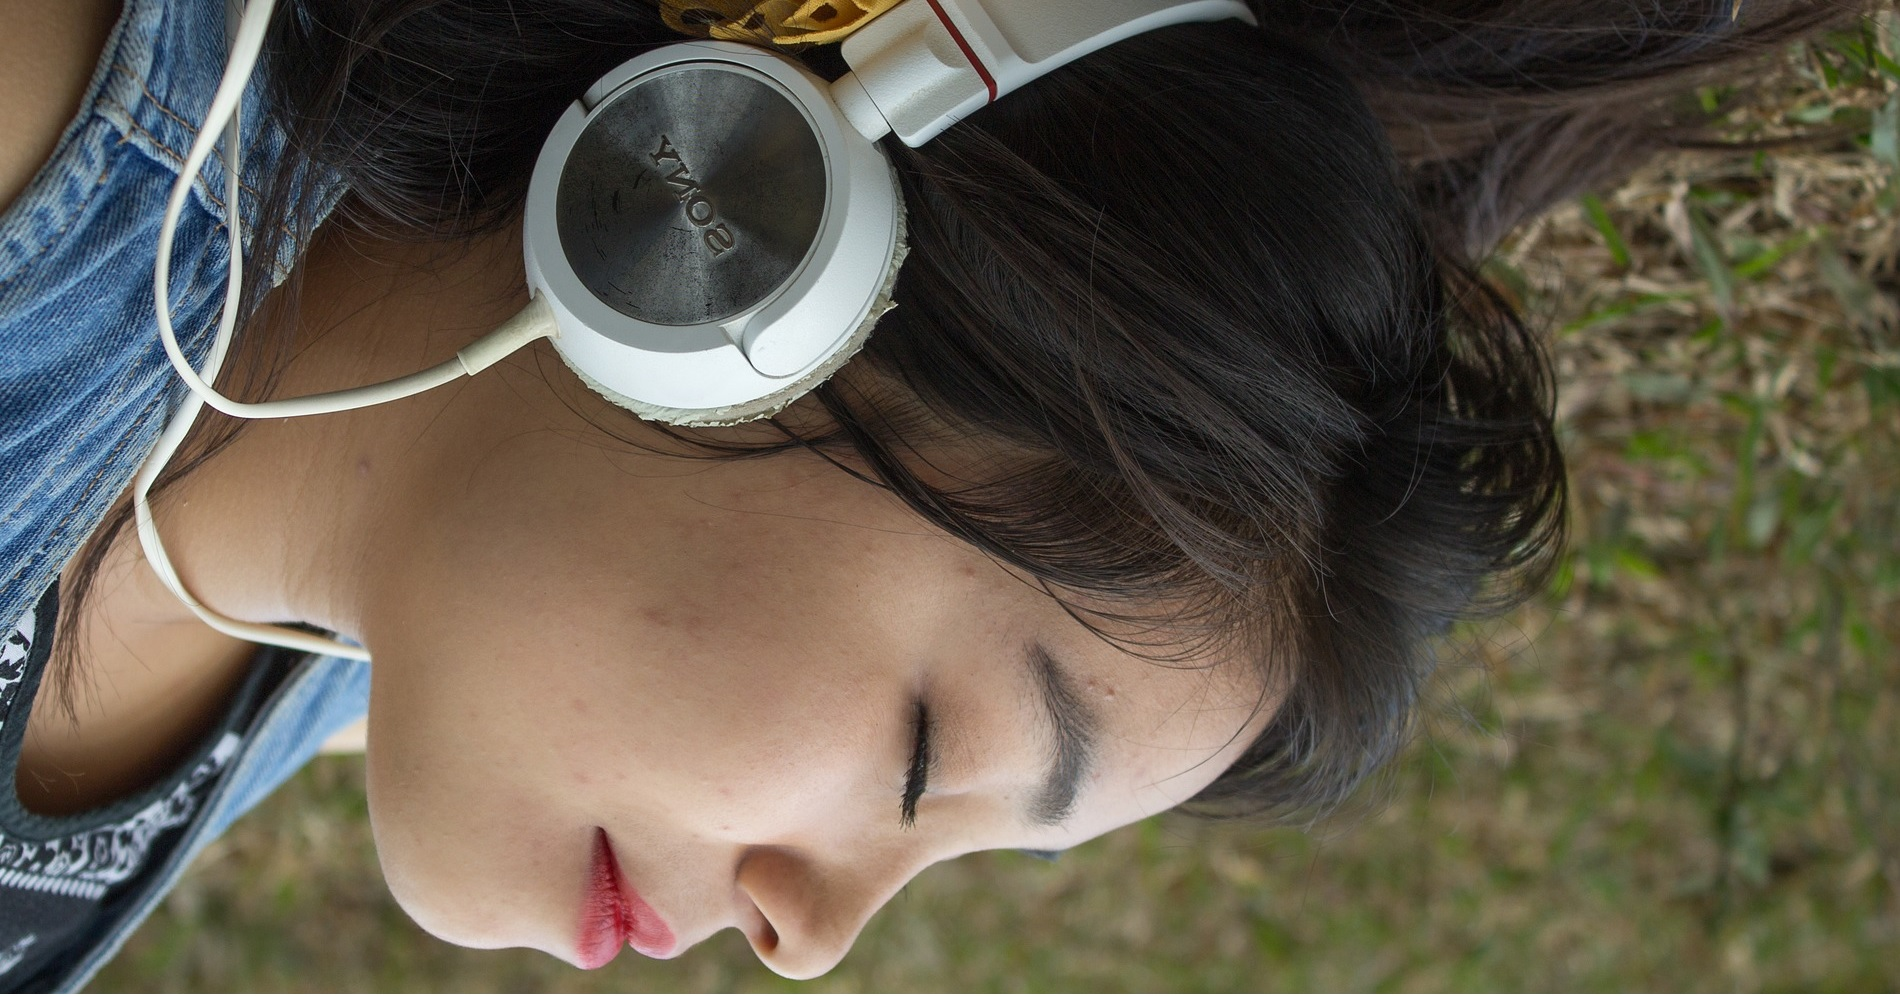 Which features of headphones are important to keep in mind?